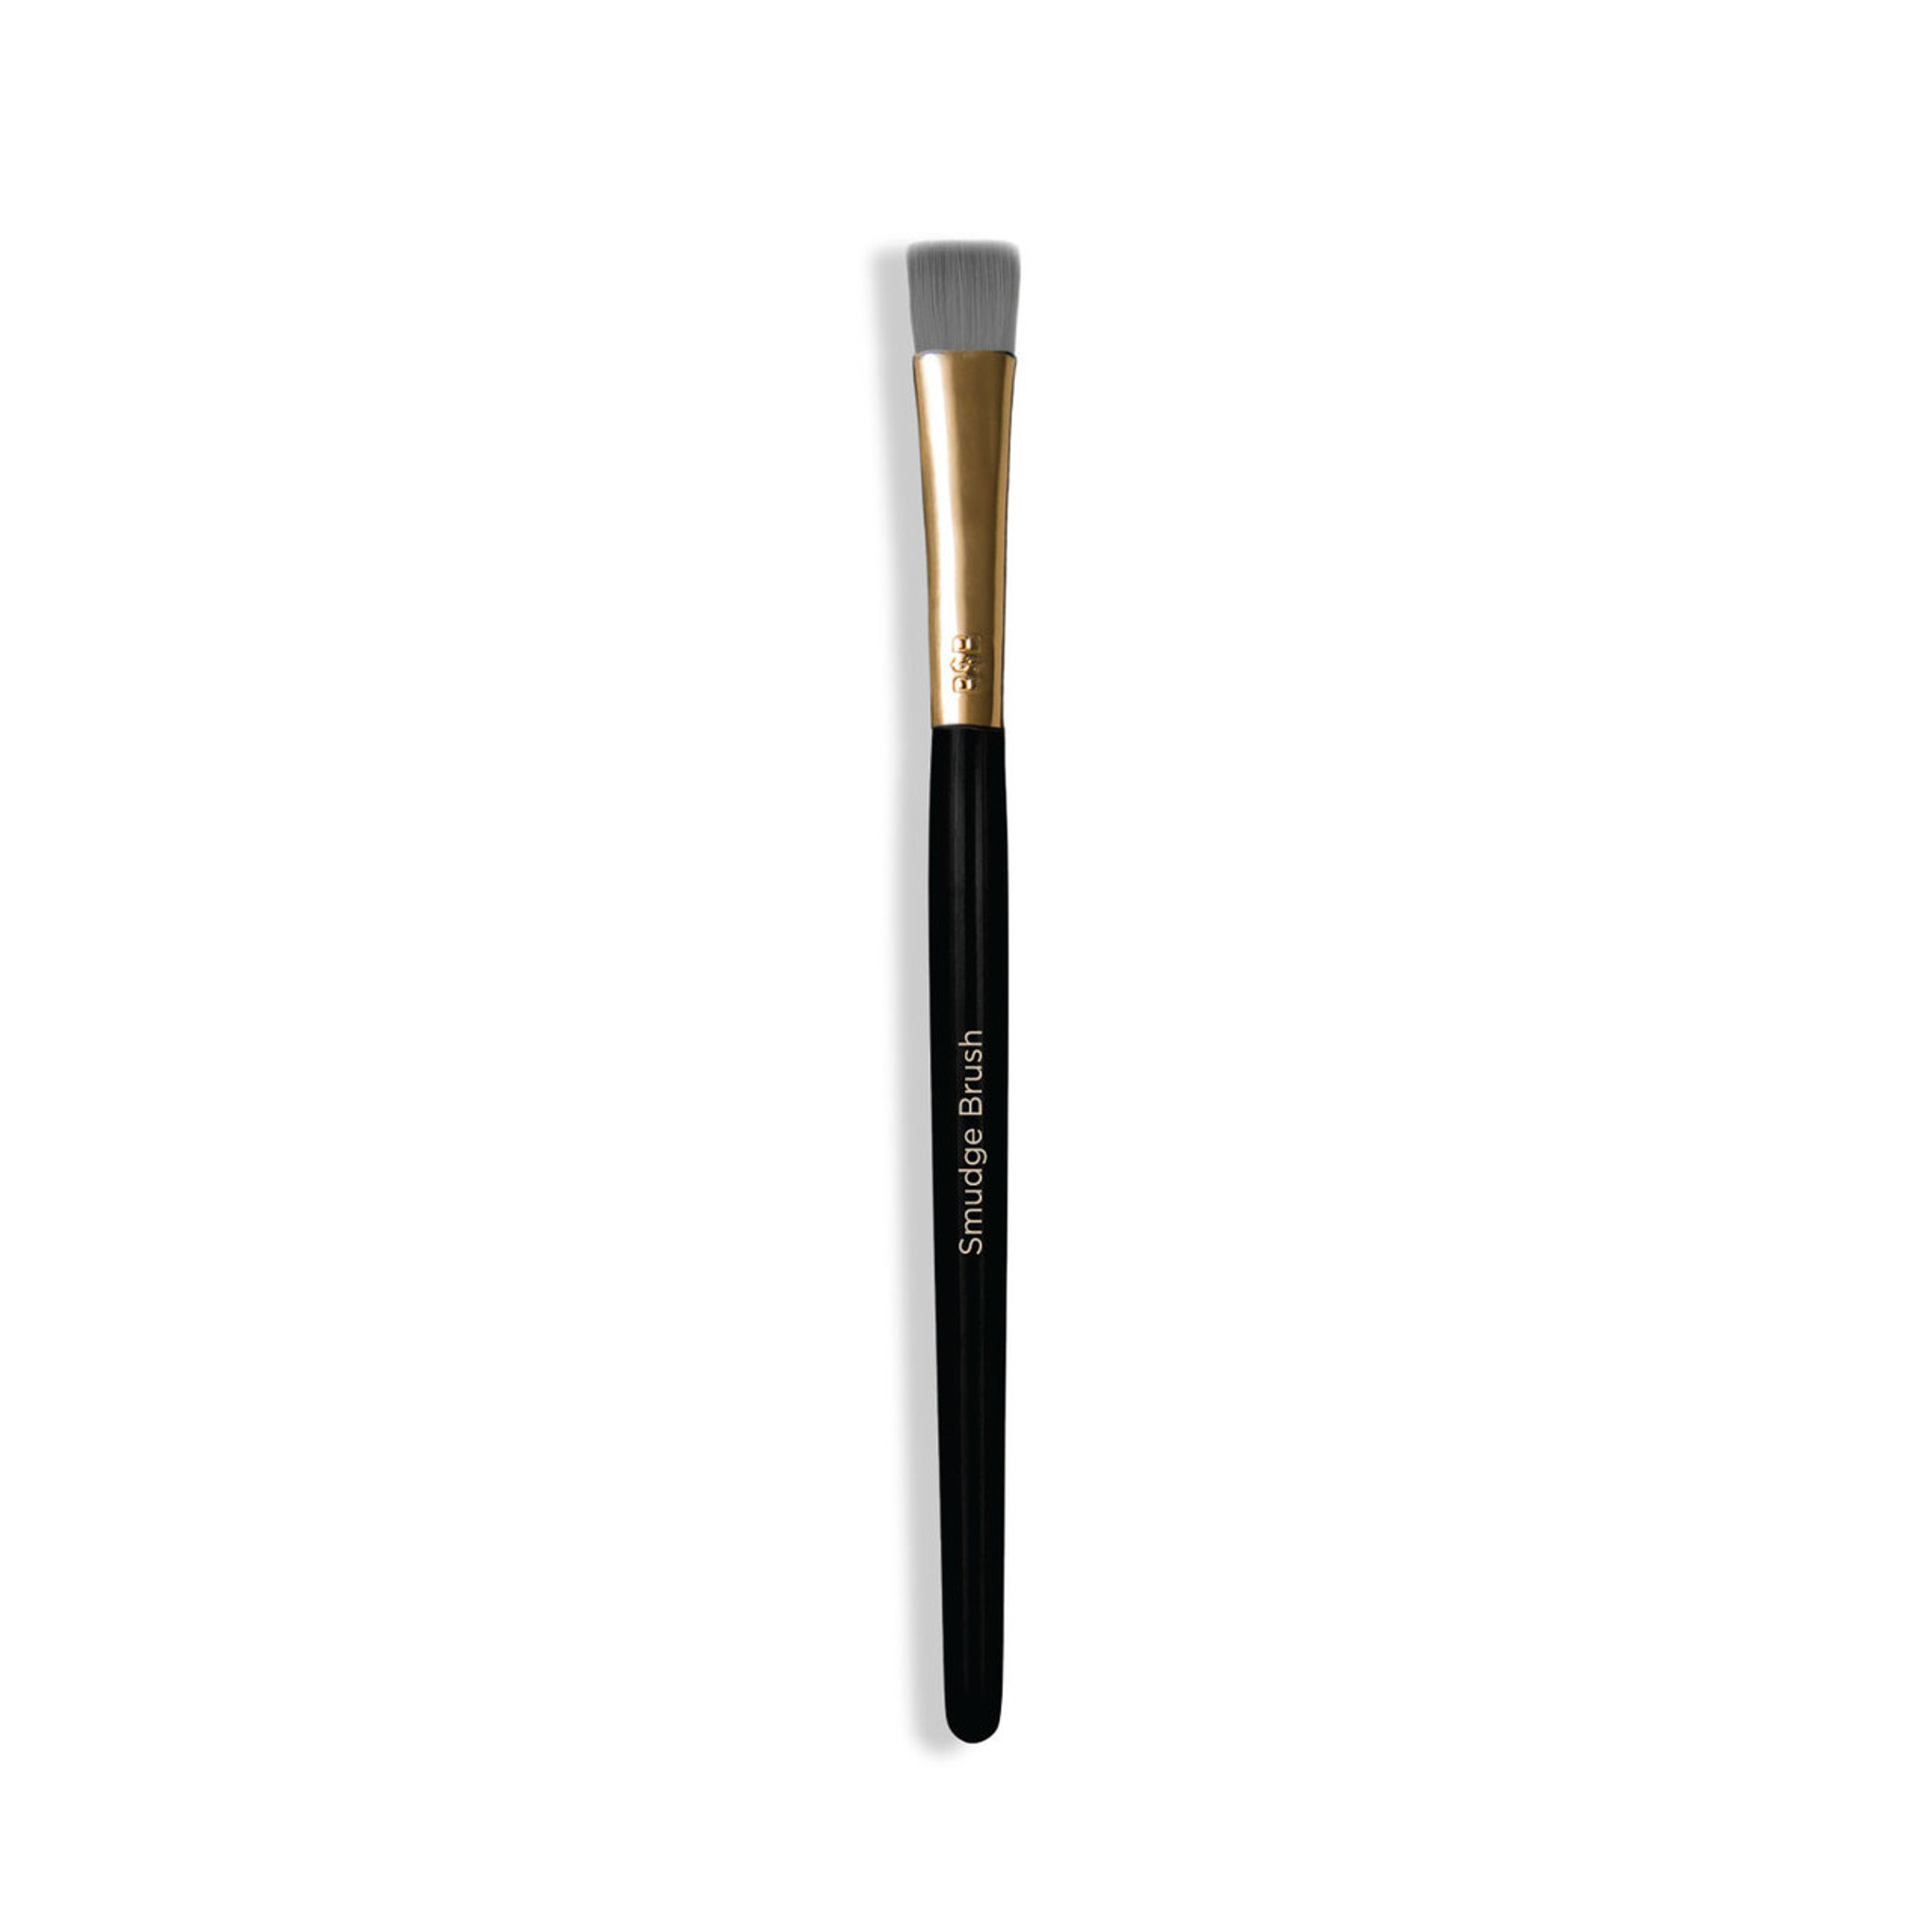 60 Seconds to Contour Brows Kit